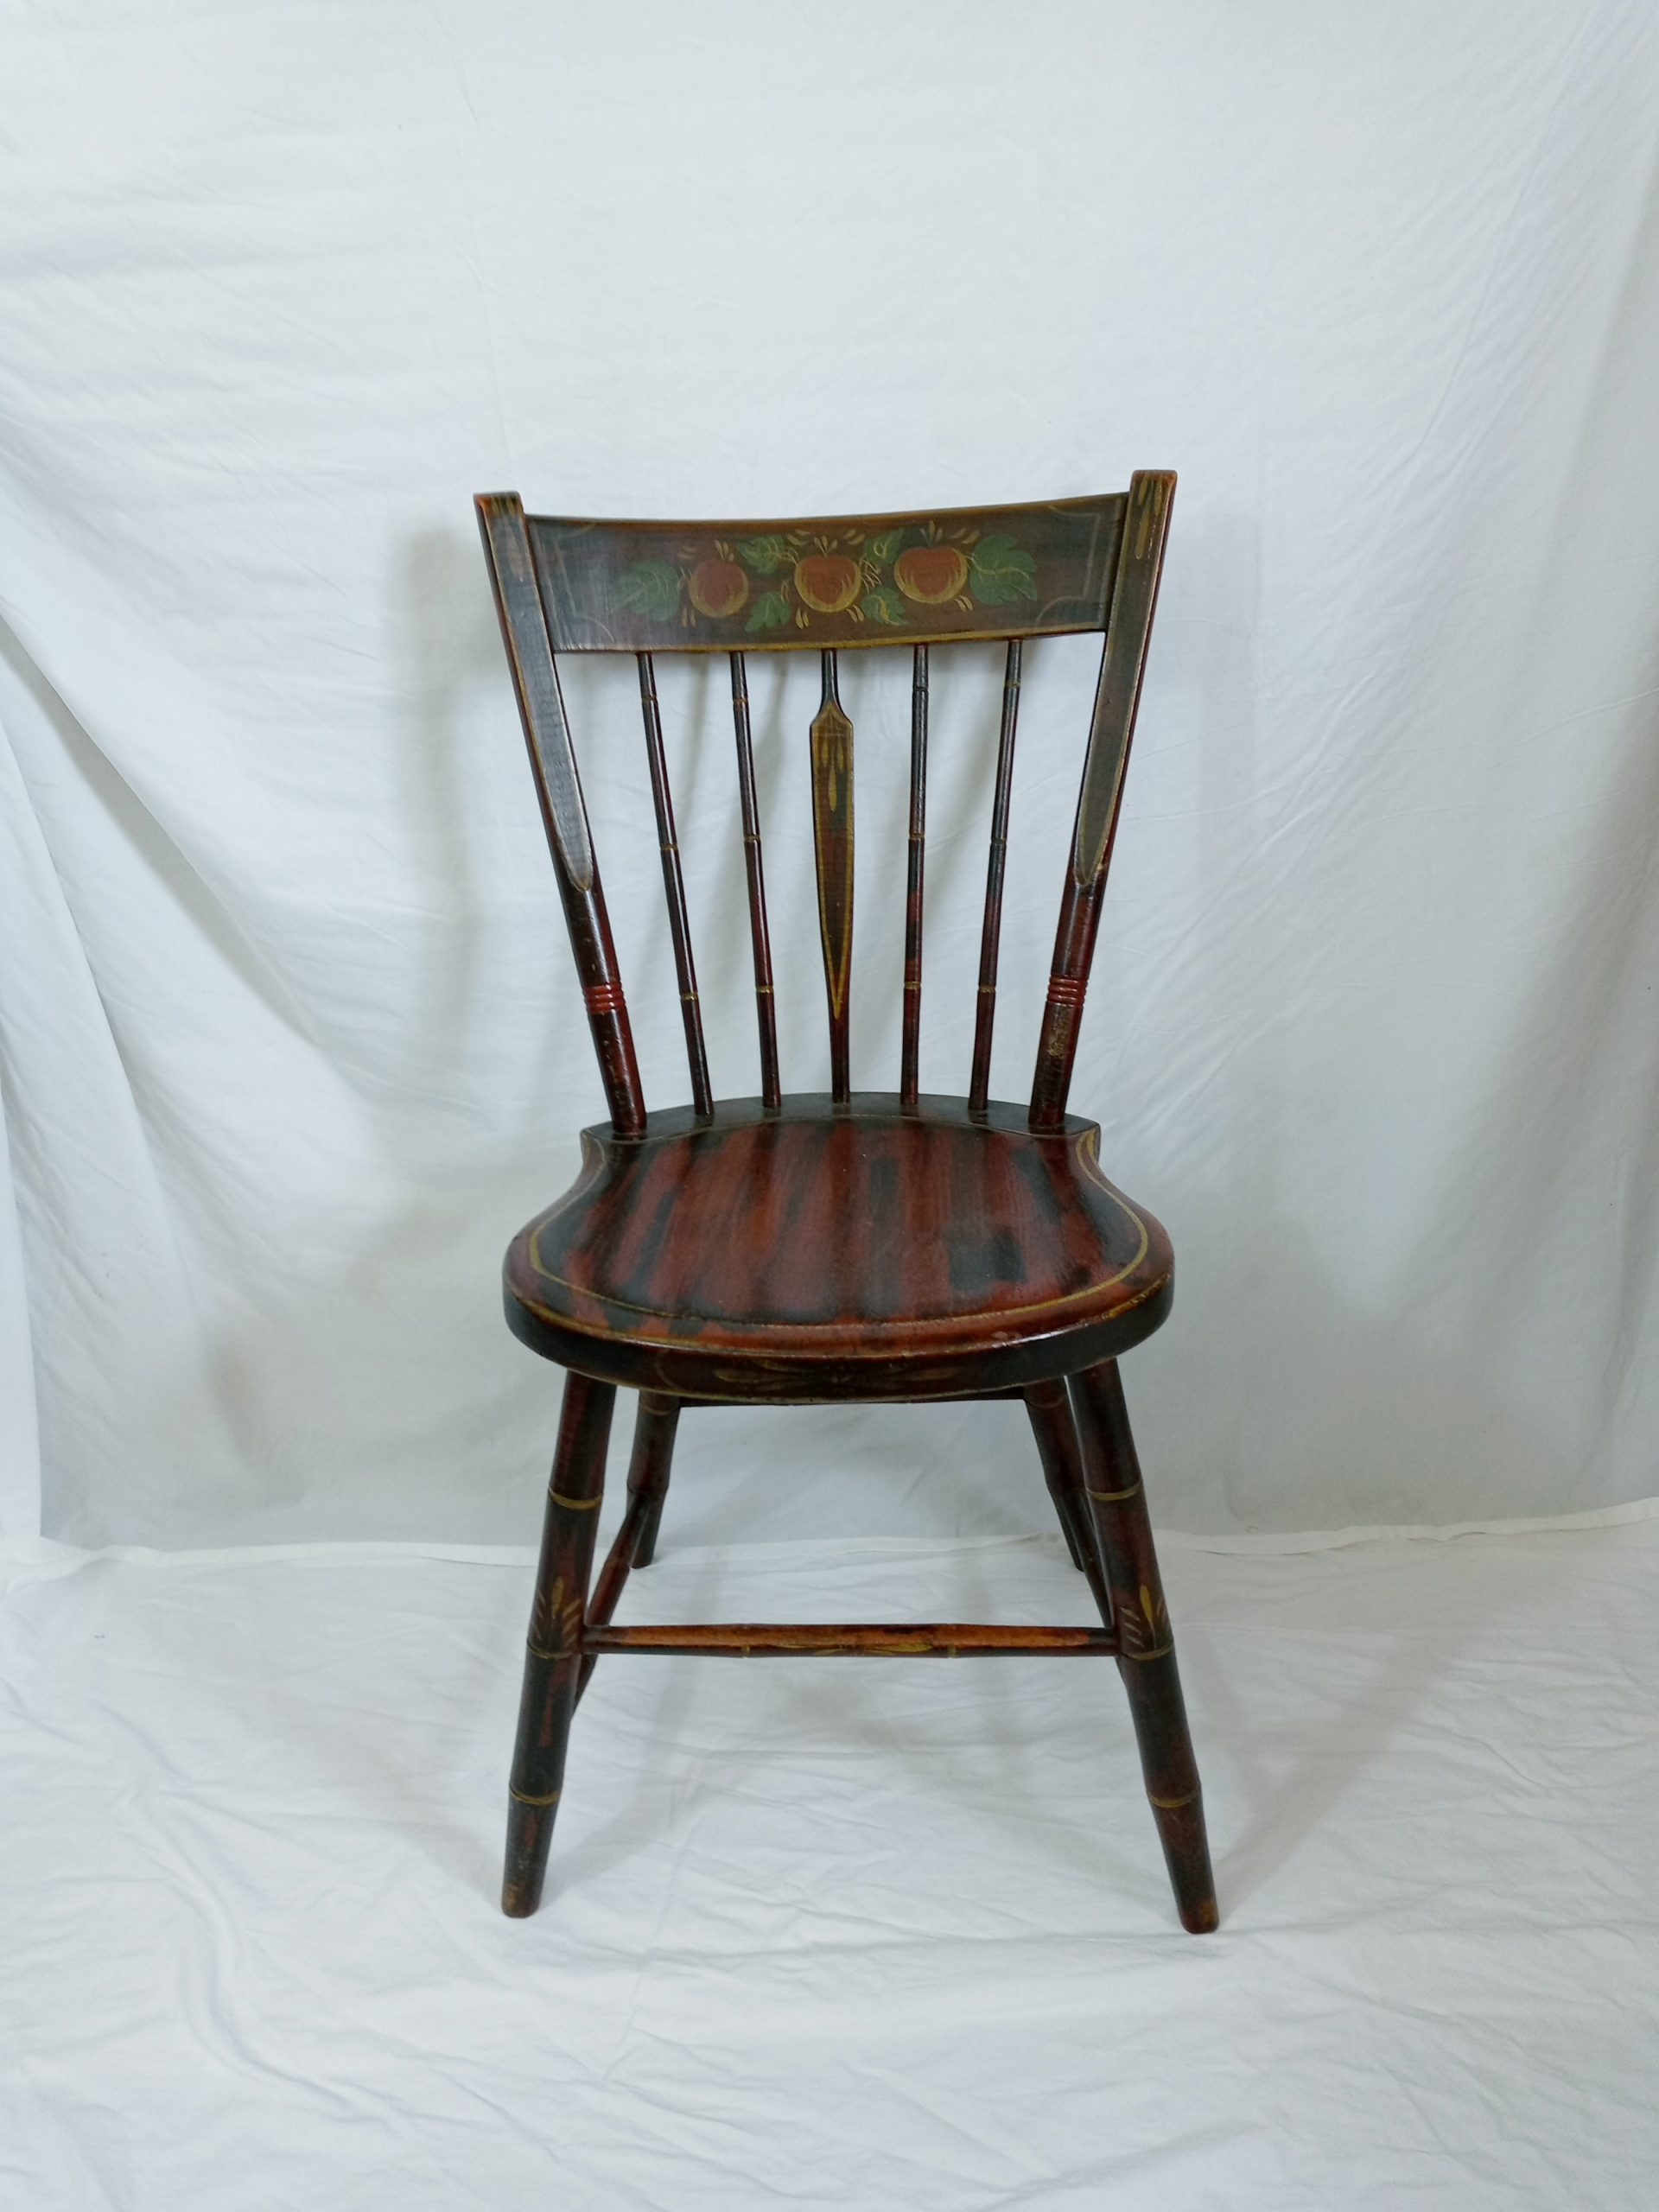 2-18988 PA paint decorated side chair Image